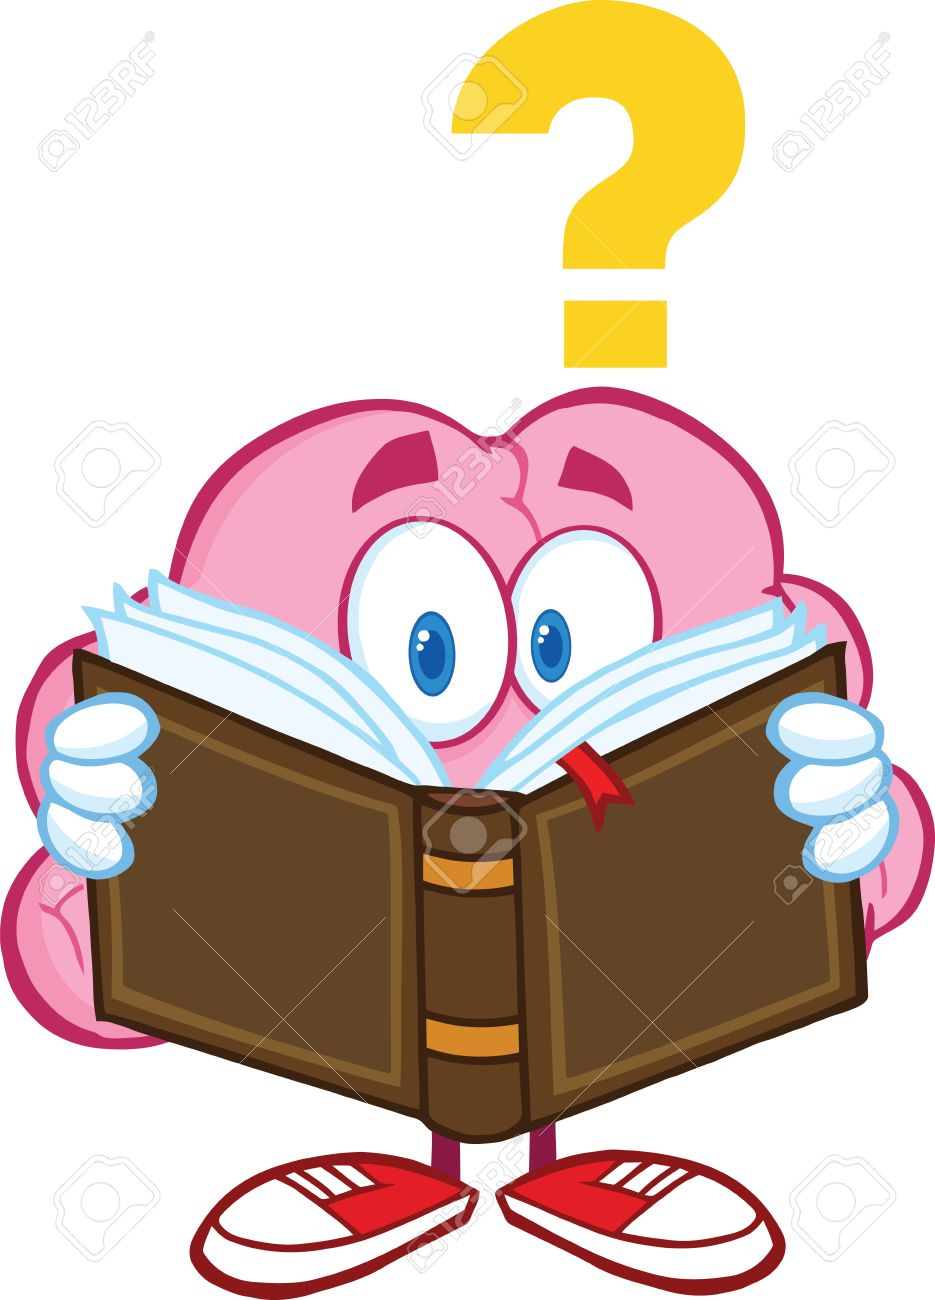 Surprised Brain Cartoon Character Reading A Book With Question Mark Stock Vector - 21020853